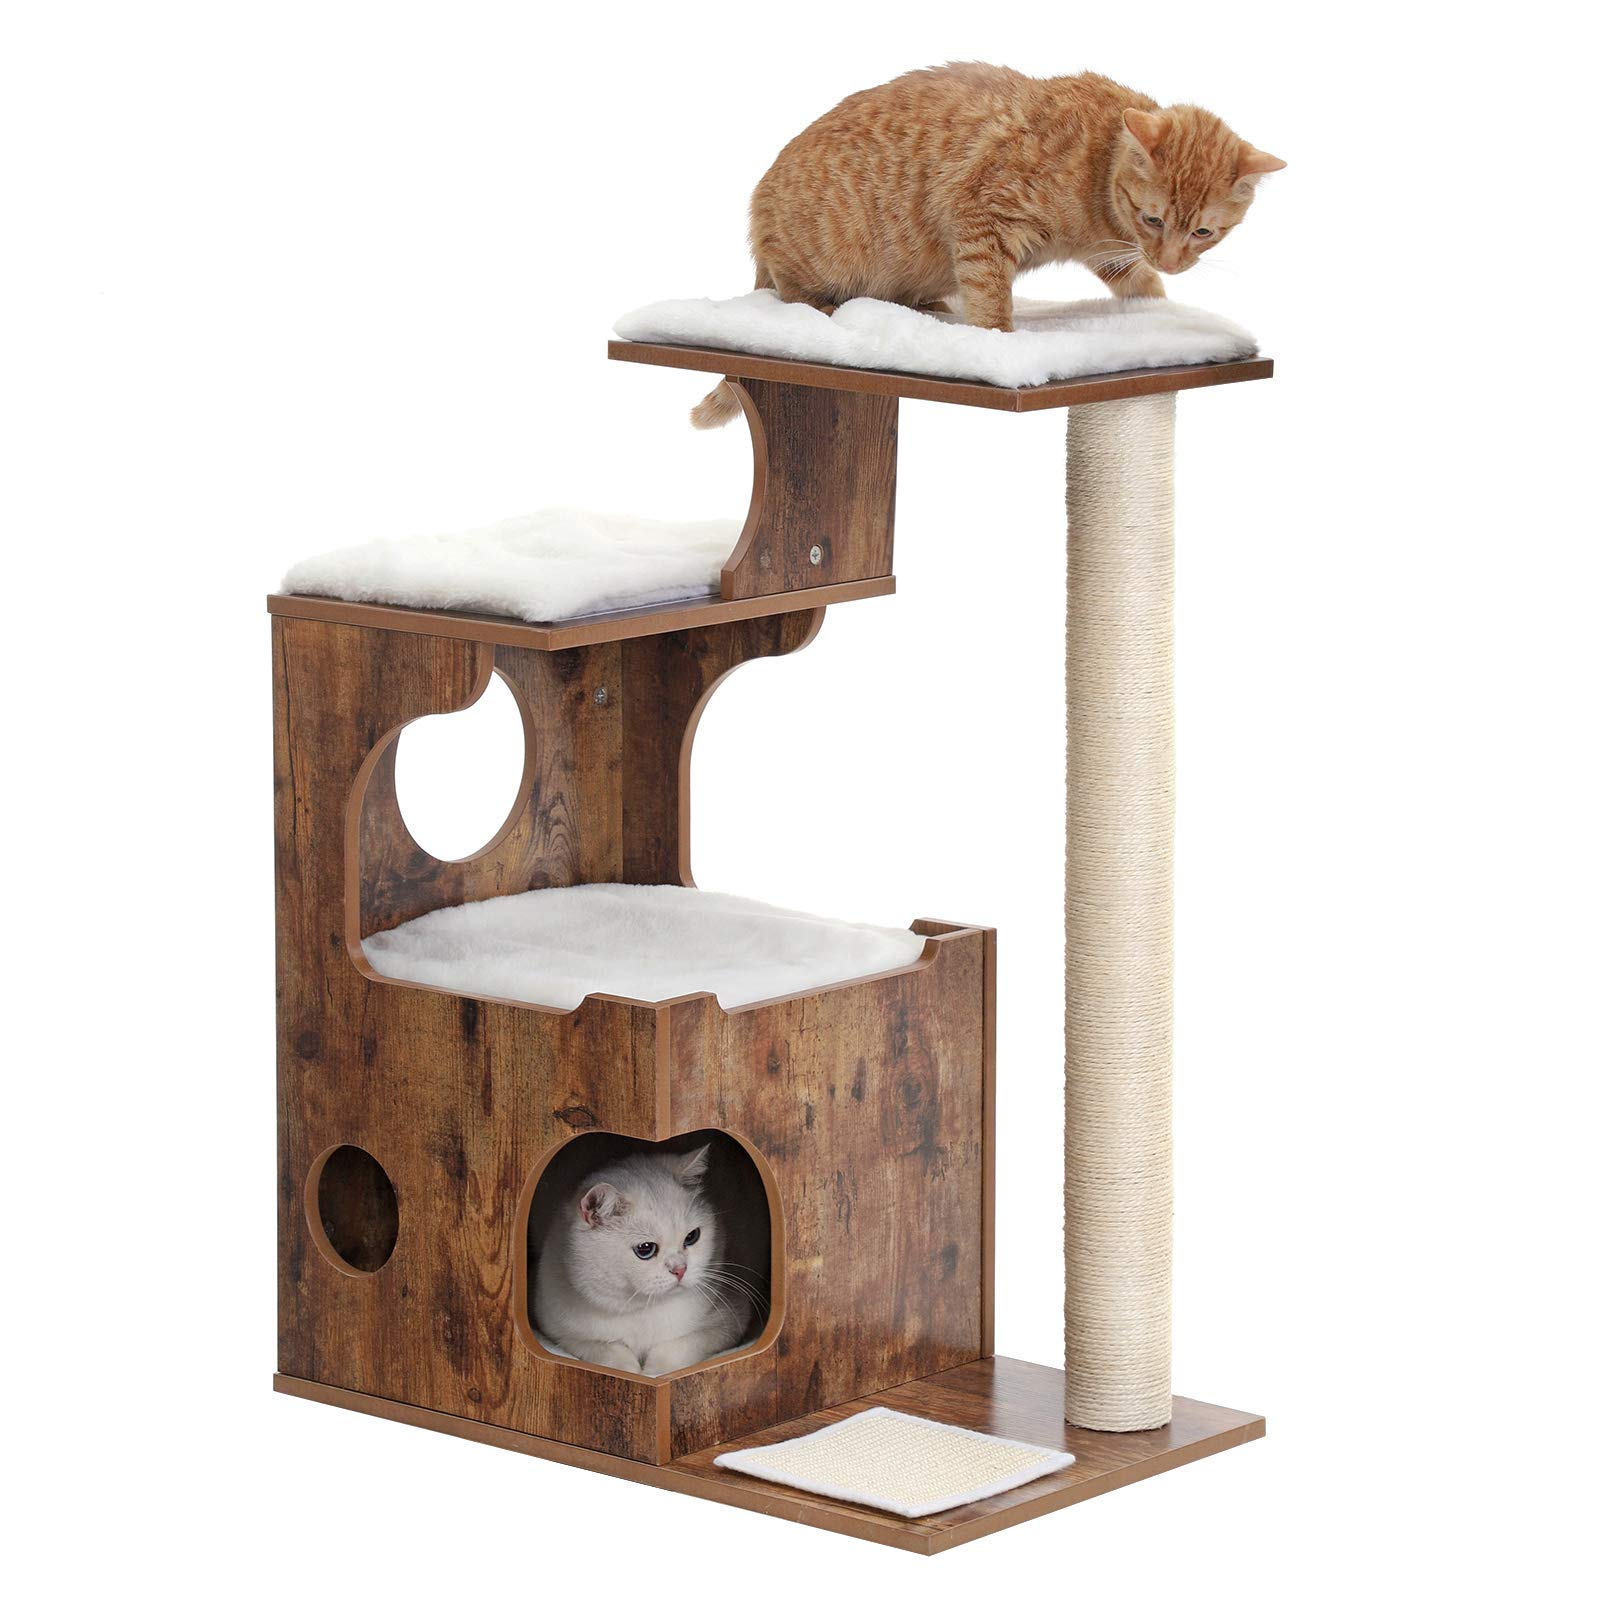 FEANDREA 34.6 inches Cat Tree, Medium Cat Tower with 3 Beds and House, Cat Condo, Sisal Post and Washable Faux Fur, Vintage, Rustic Brown and White UPCT70HW by FEANDREA